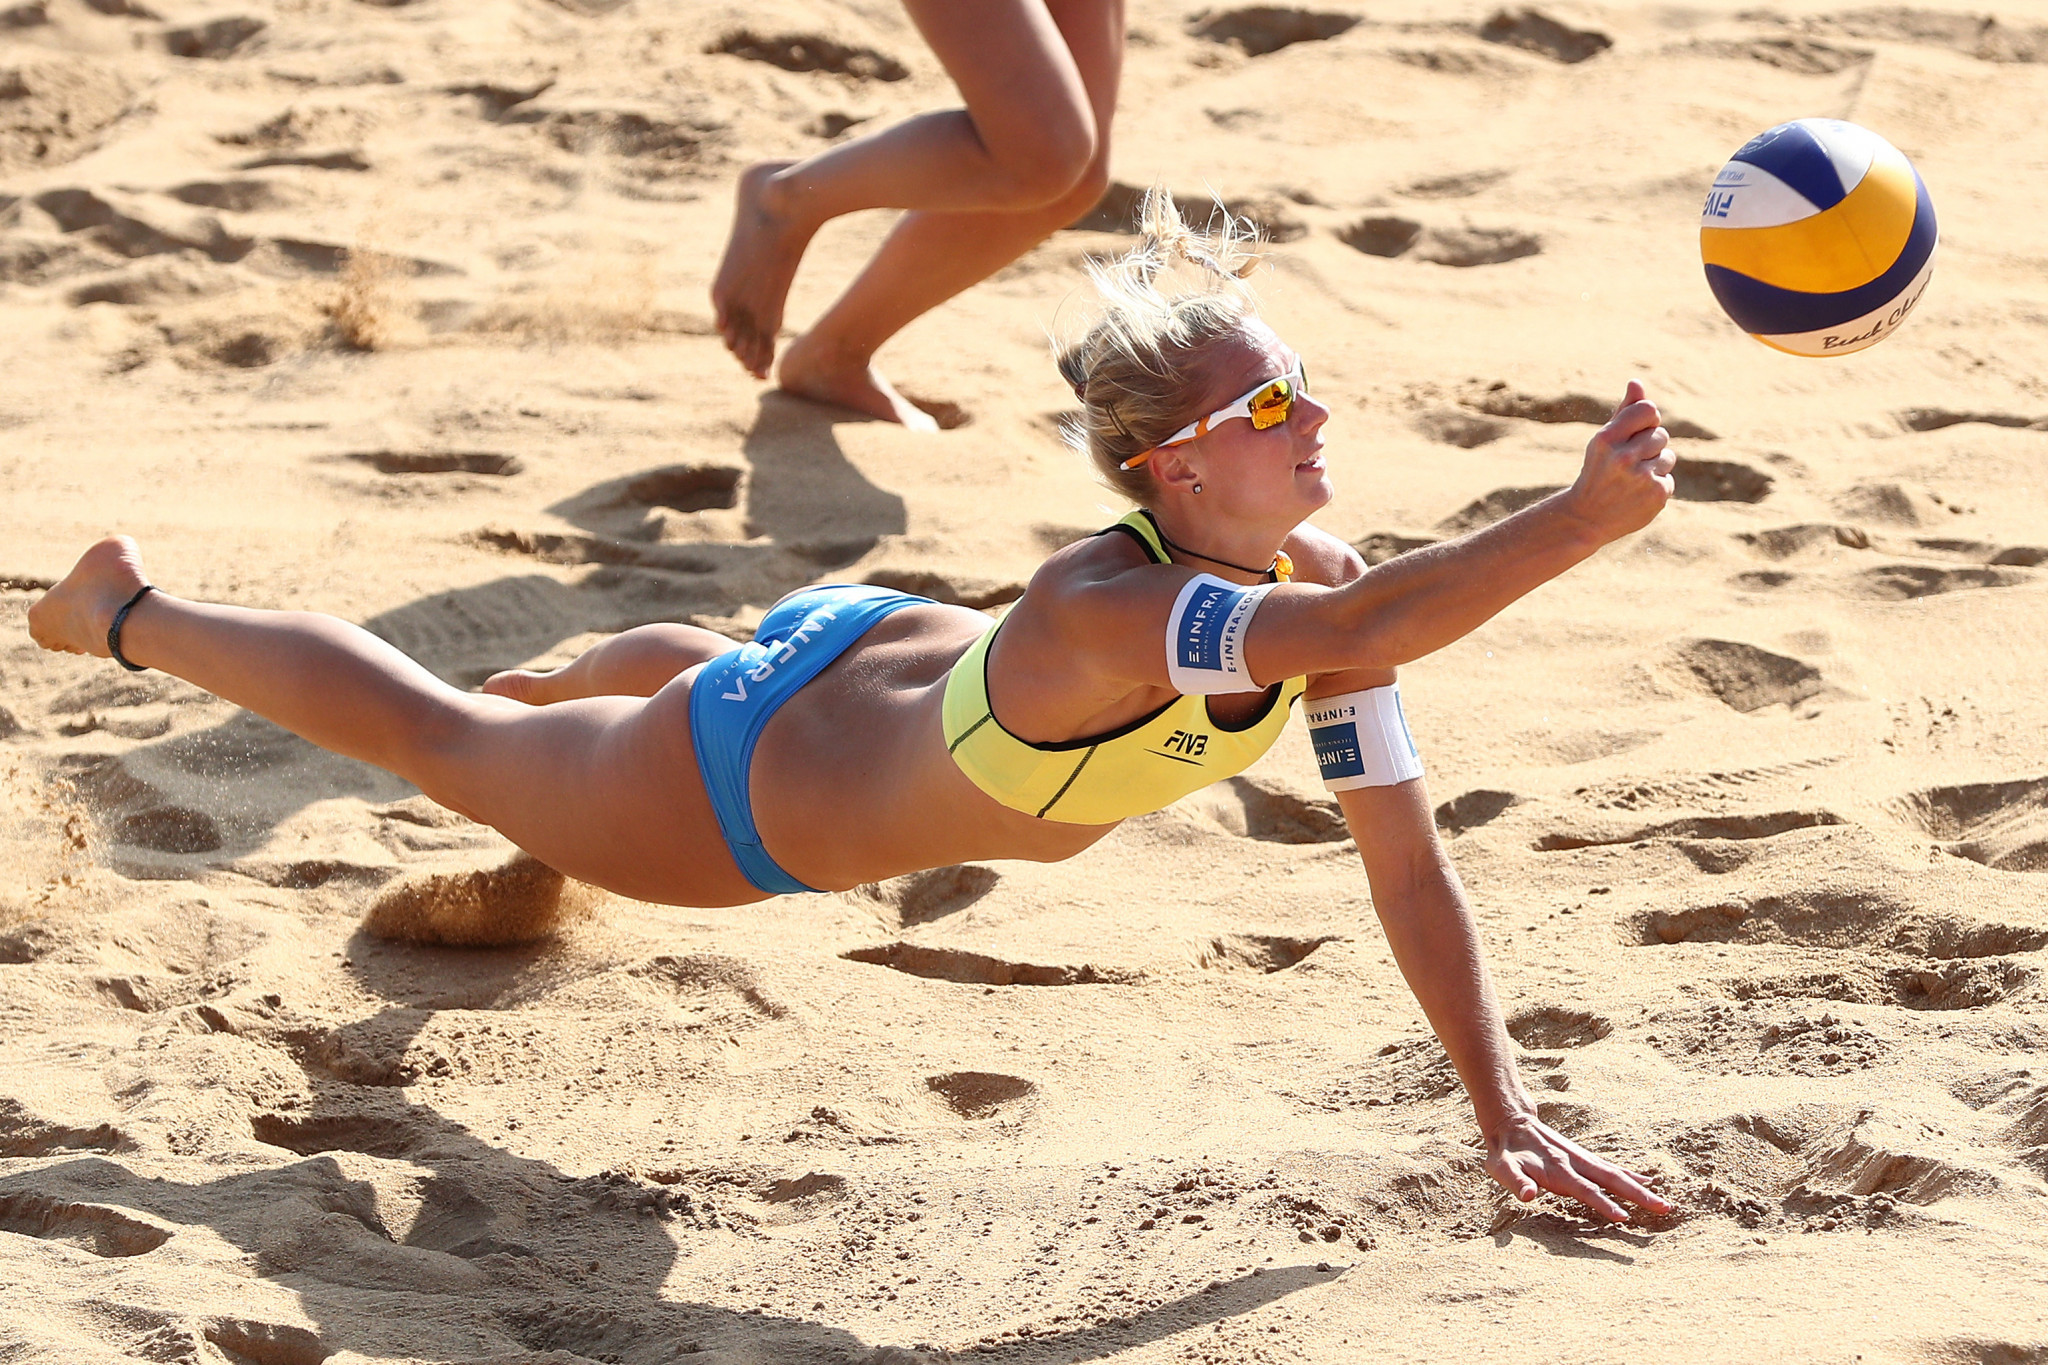 Kim Behrens progressed to the final of the European Beach Volleyball Championships with German partner Cinja Tillmann ©Getty Images